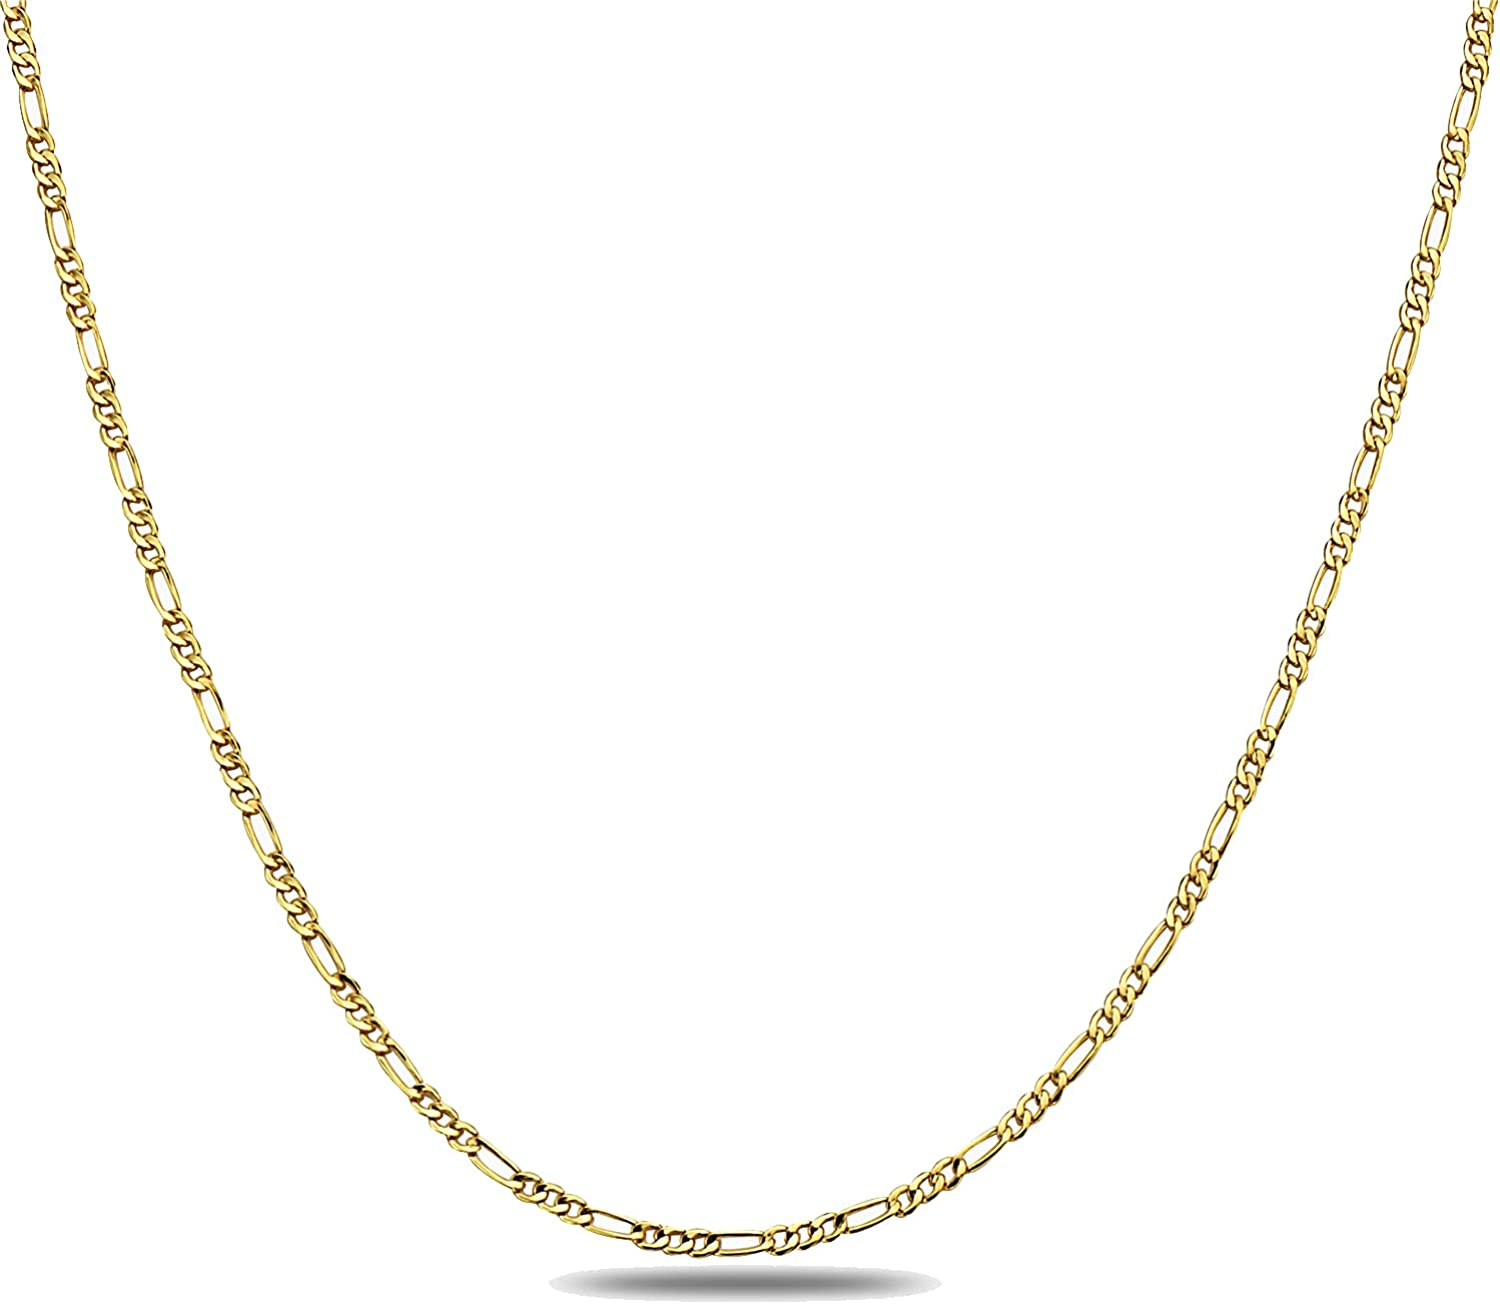 14K Gold 2.0mm Figaro/3+1 Link Chain Necklace- Made in Italy - Multiple Colors and Sizes